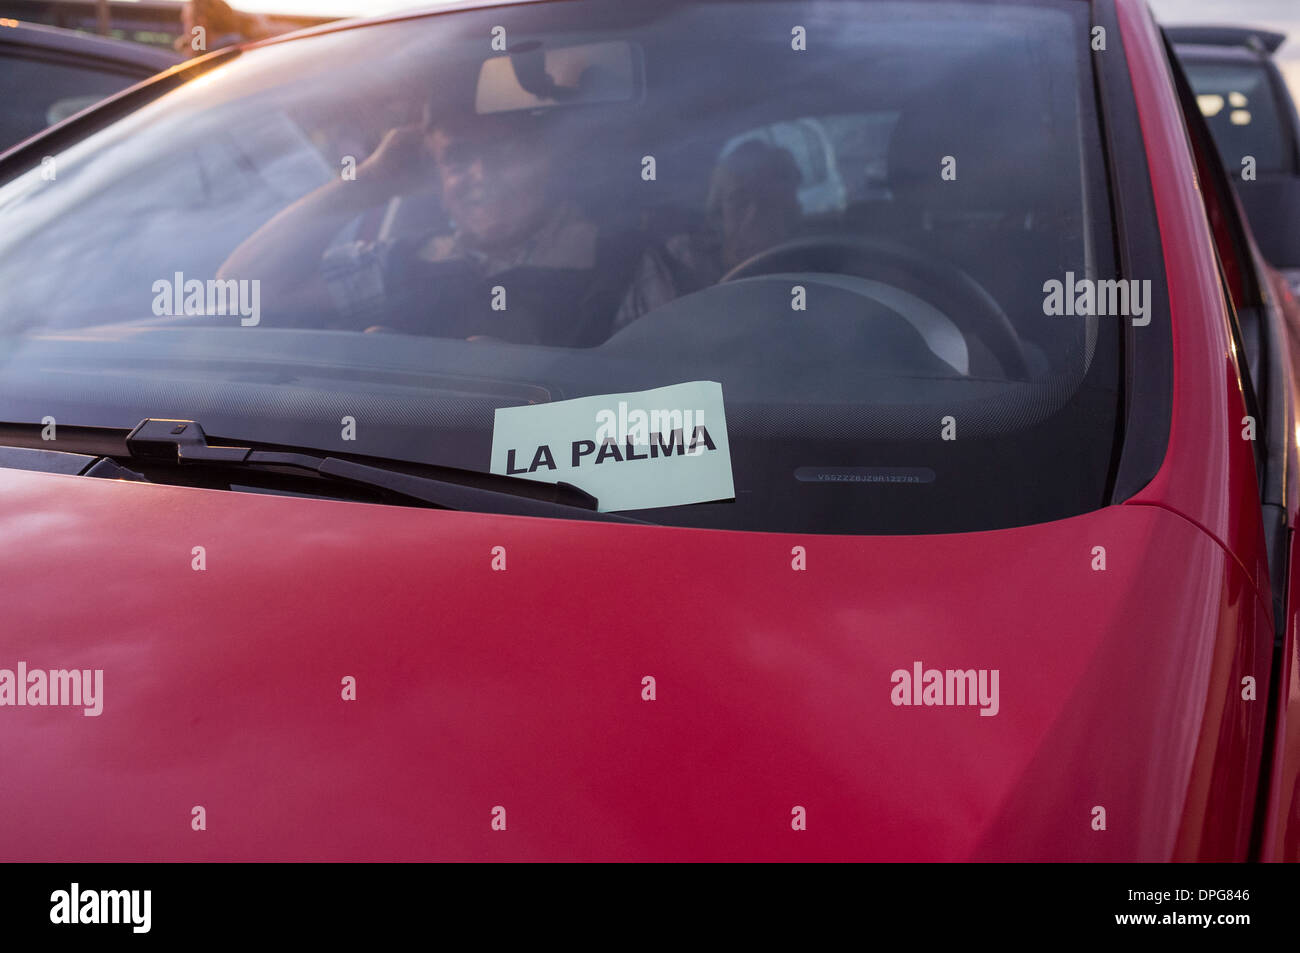 La Palma ticket tucked under windscreen wiper of car waiting to embark on the Fred Olsen ferry at los Cristianos, Tenerife, - Stock Image